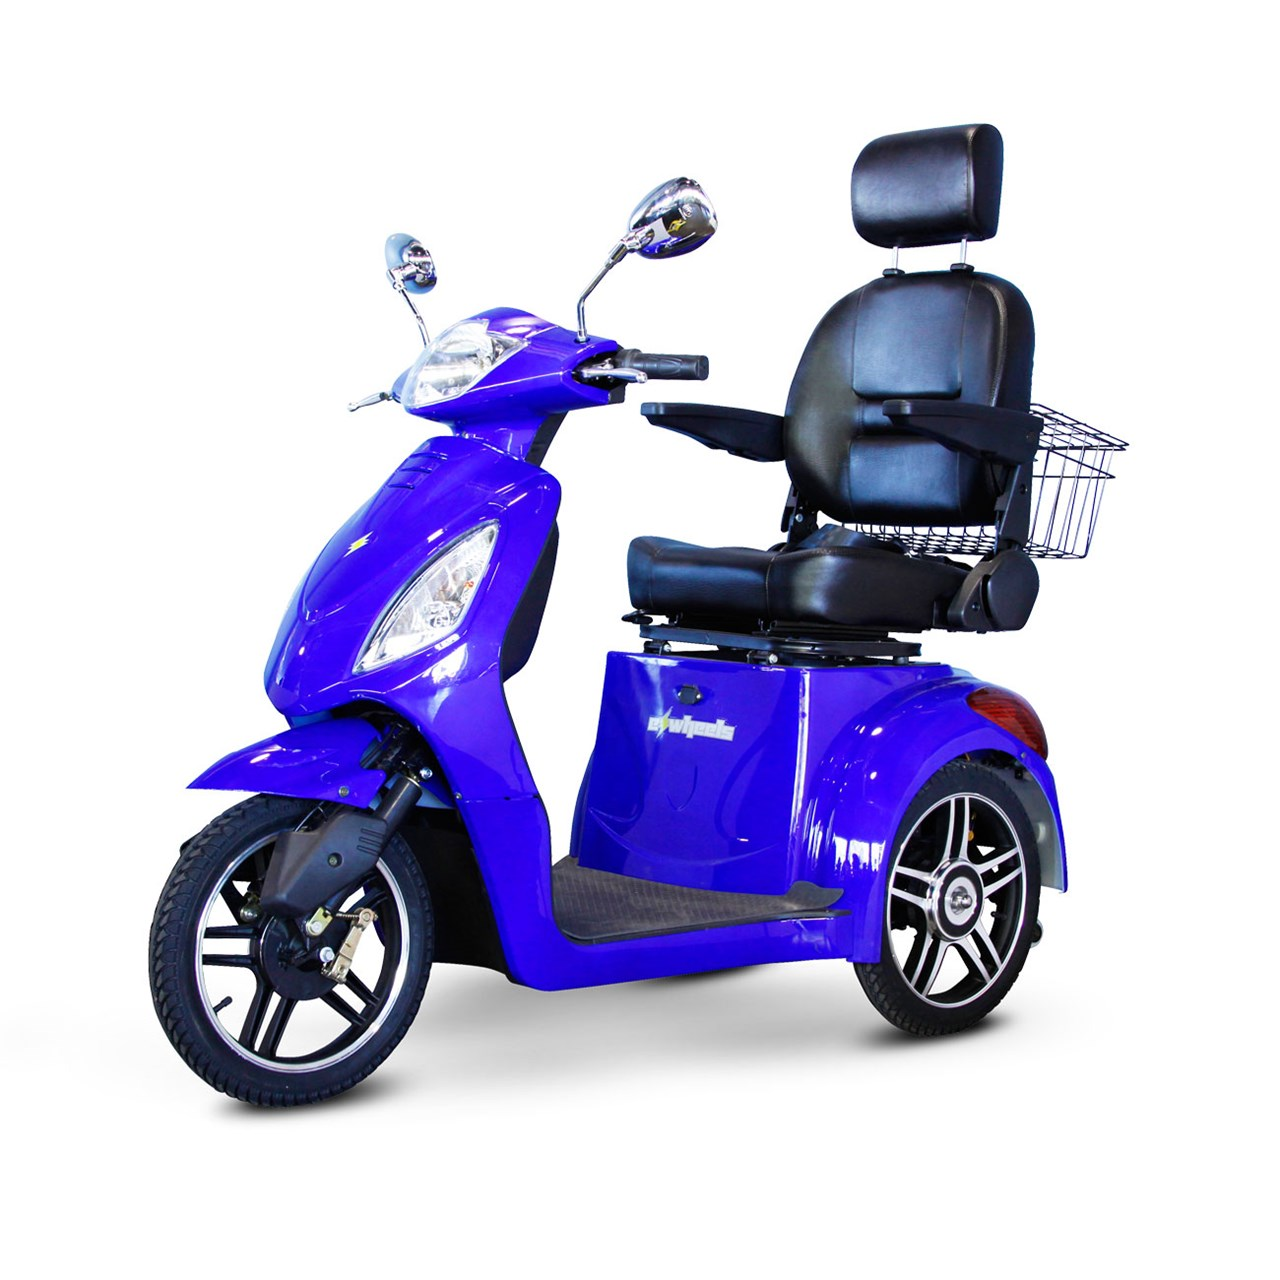 Maxiaids e wheels ew 36 3 wheel electric senior mobility for Where can i buy a motor scooter